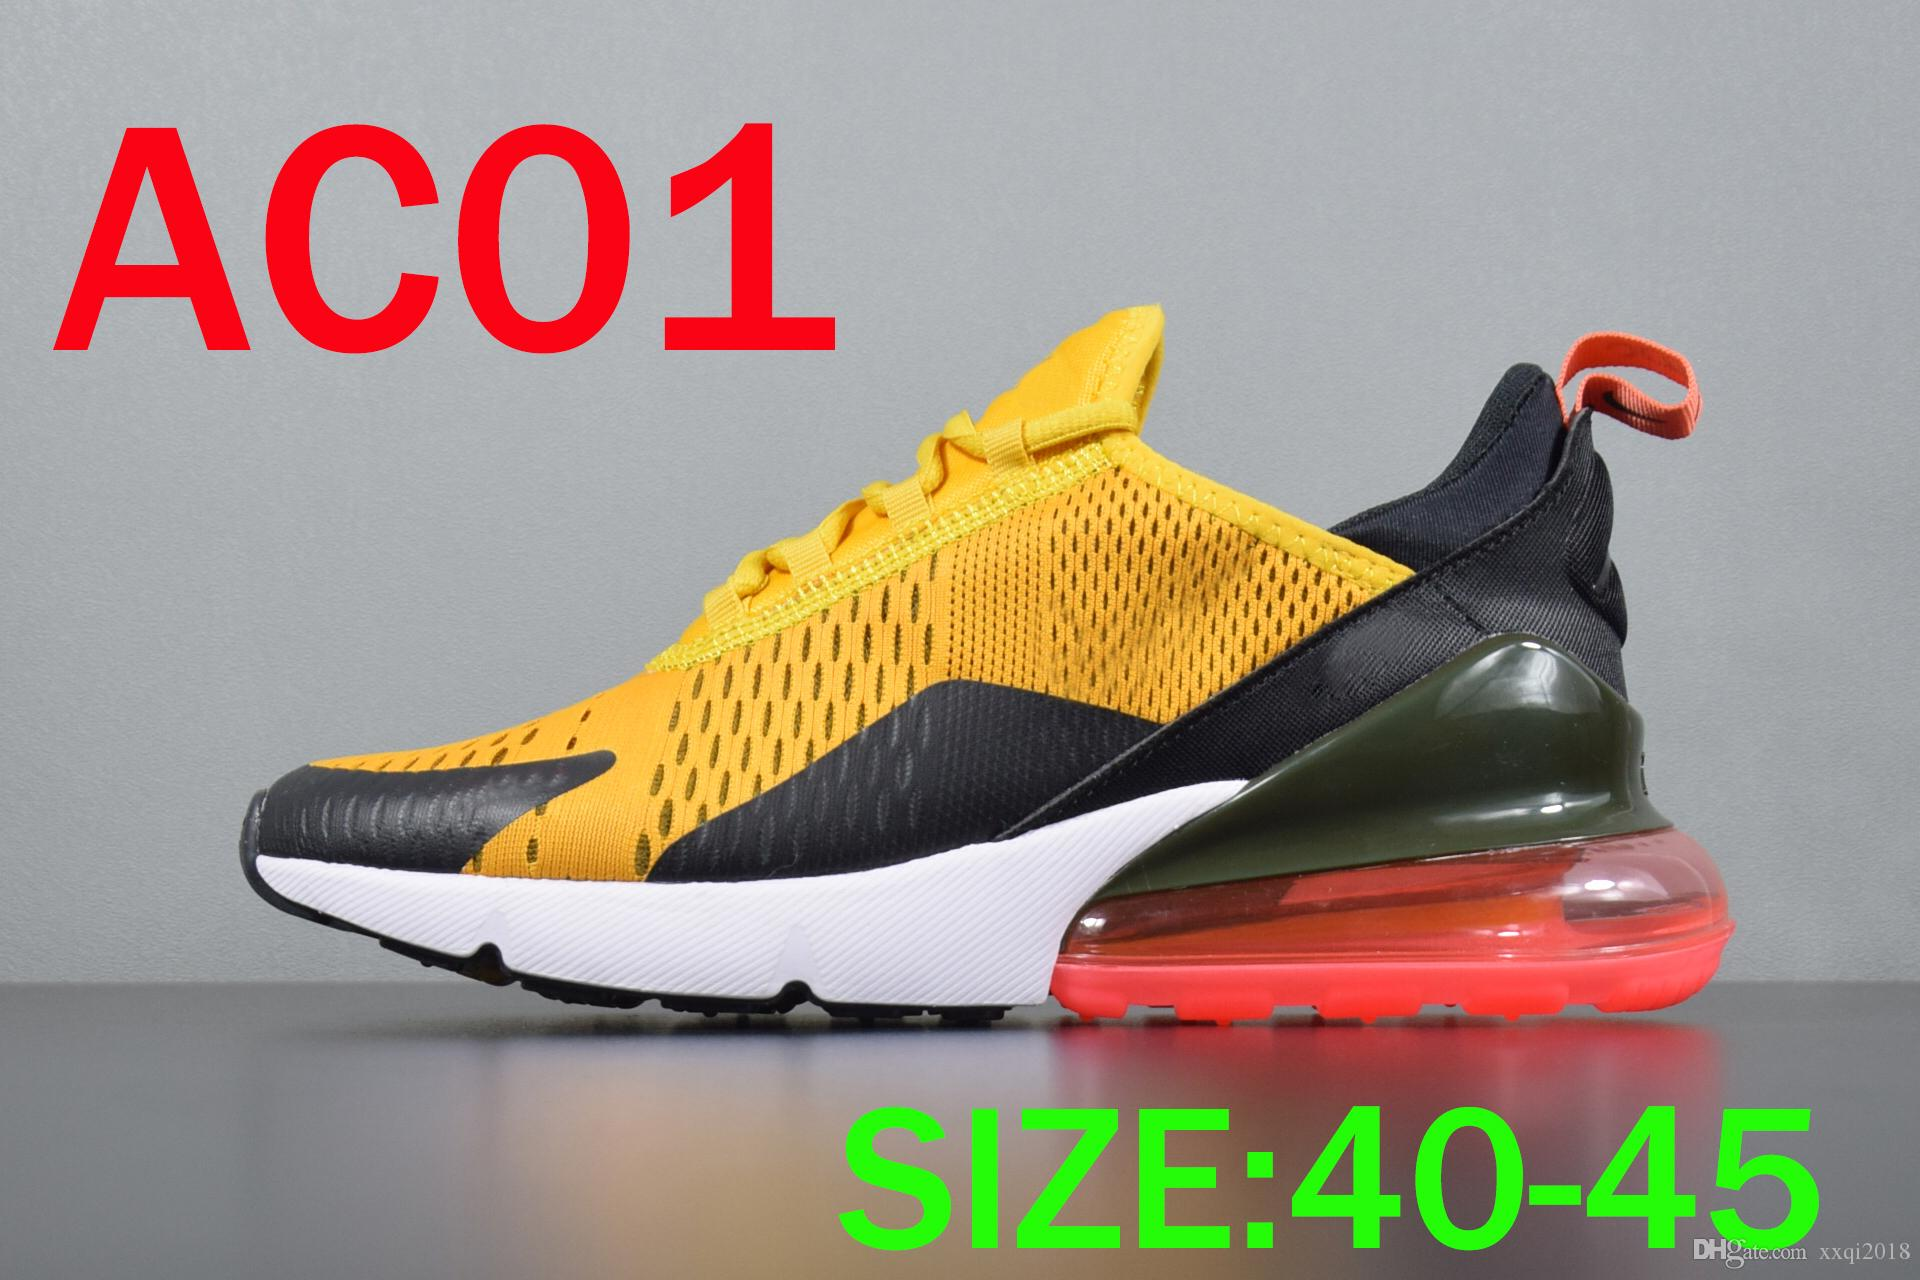 discount view for cheap cheap online New Arrival Air Cushion Men Running Shoes 270 Sneakers Dusty Cactus White Black Red Light Bone buy cheap brand new unisex buy online outlet official for sale qBzOP